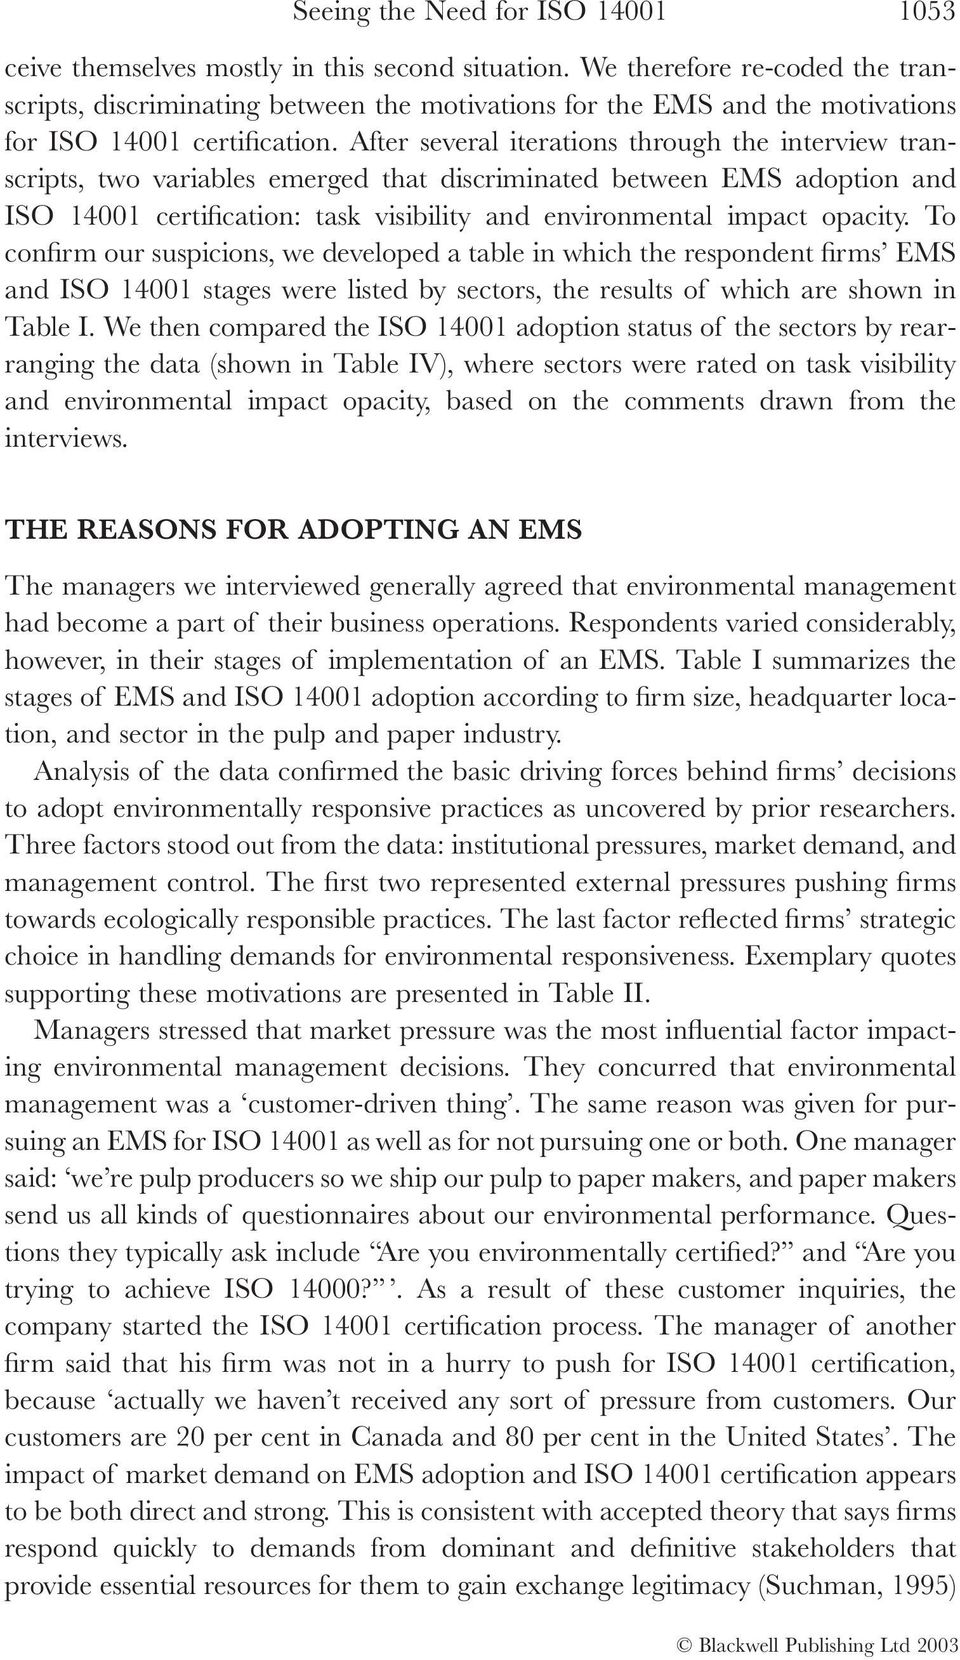 After several iterations through the interview transcripts, two variables emerged that discriminated between EMS adoption and ISO 14001 certification: task visibility and environmental impact opacity.